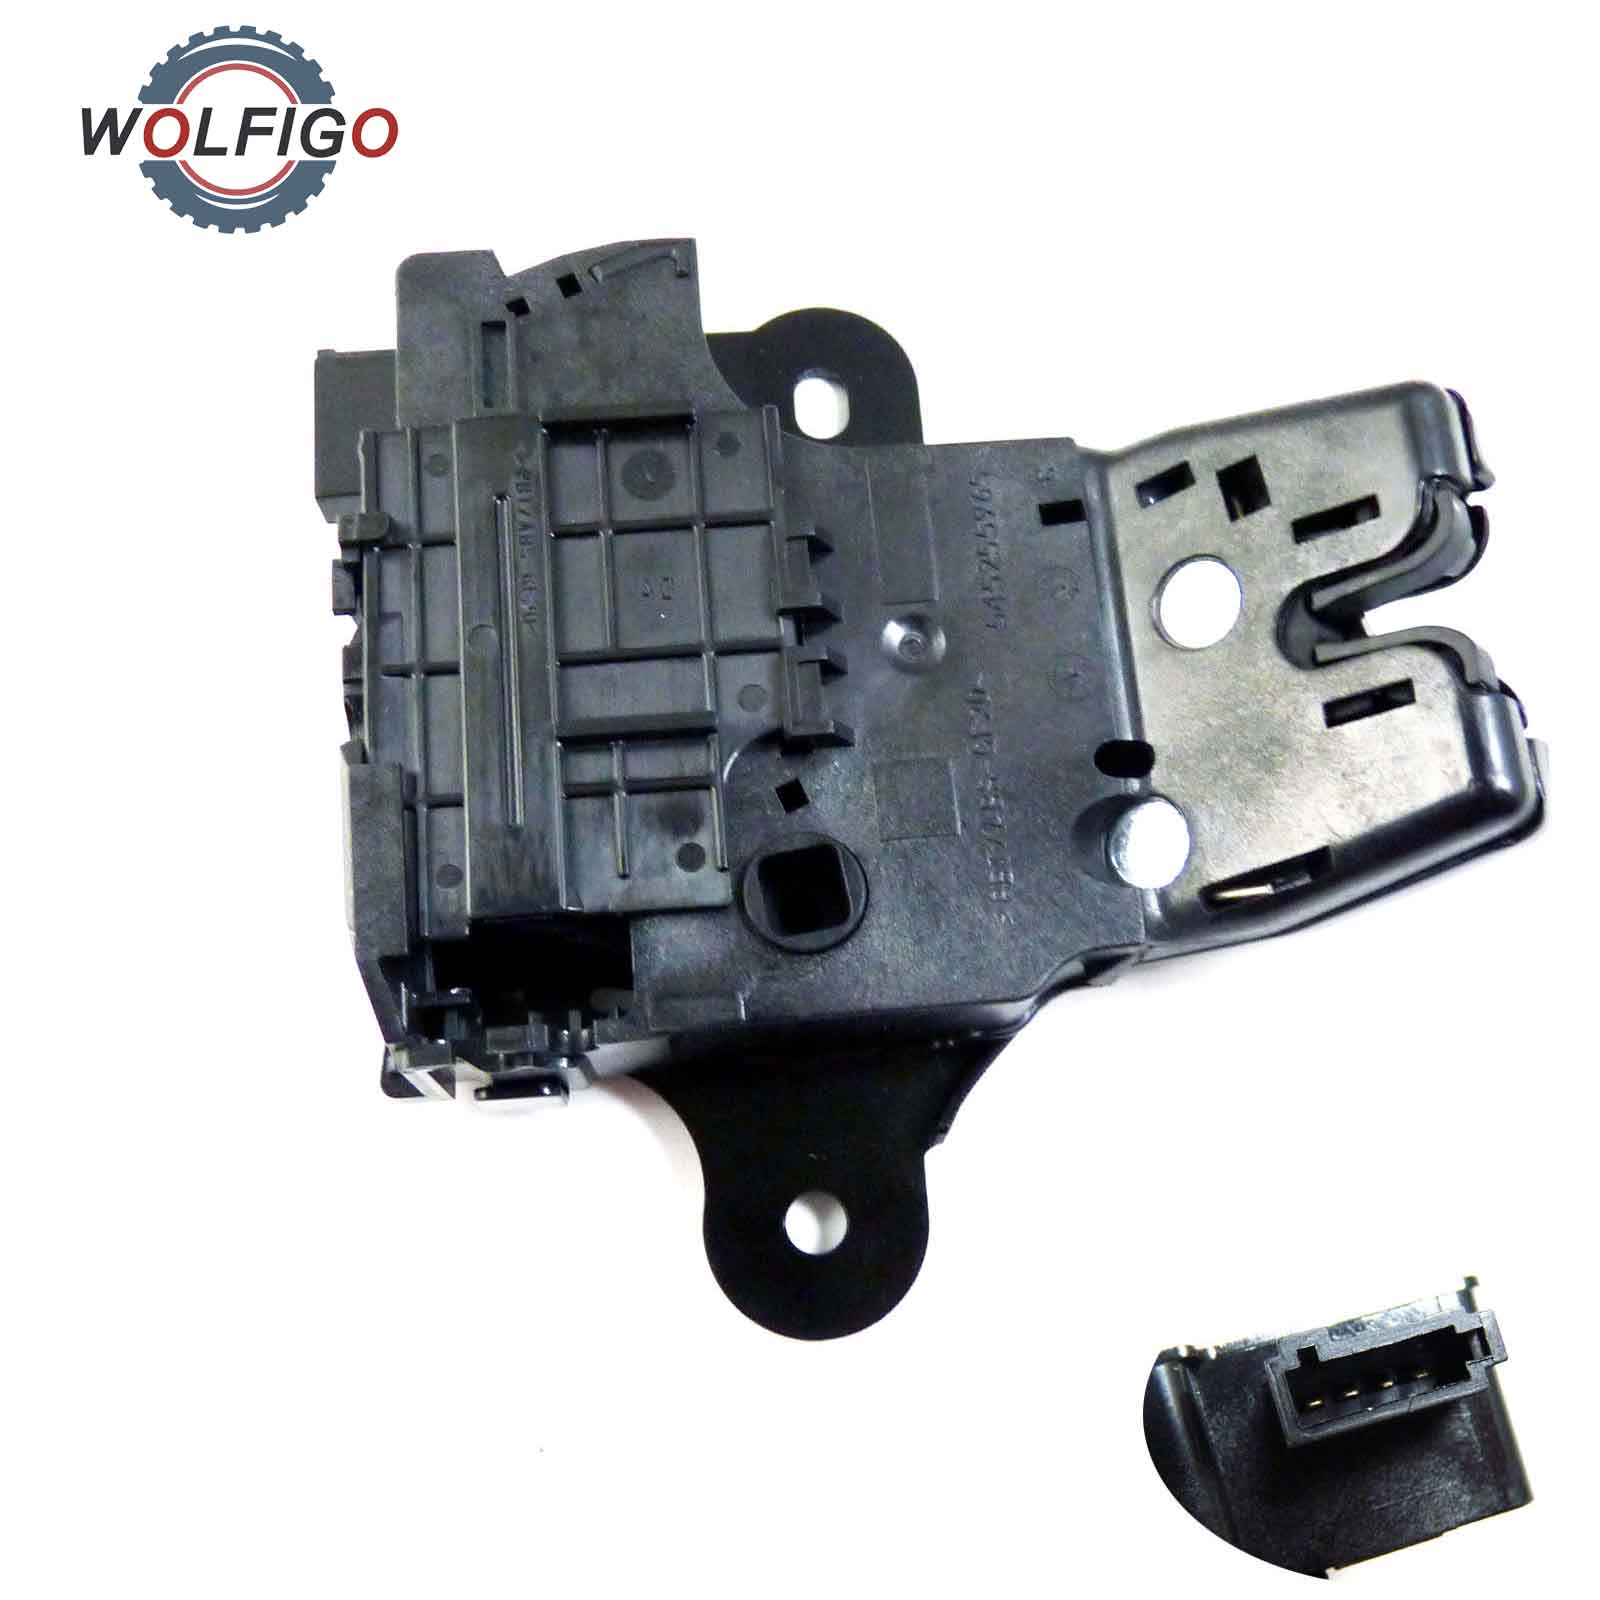 hight resolution of wolfigo trunk lock lid latch 13501988 for chery chevrolet malibu camaro sonic curze cadillac cts ats buick regal verano lacrosse in trunk lids parts from